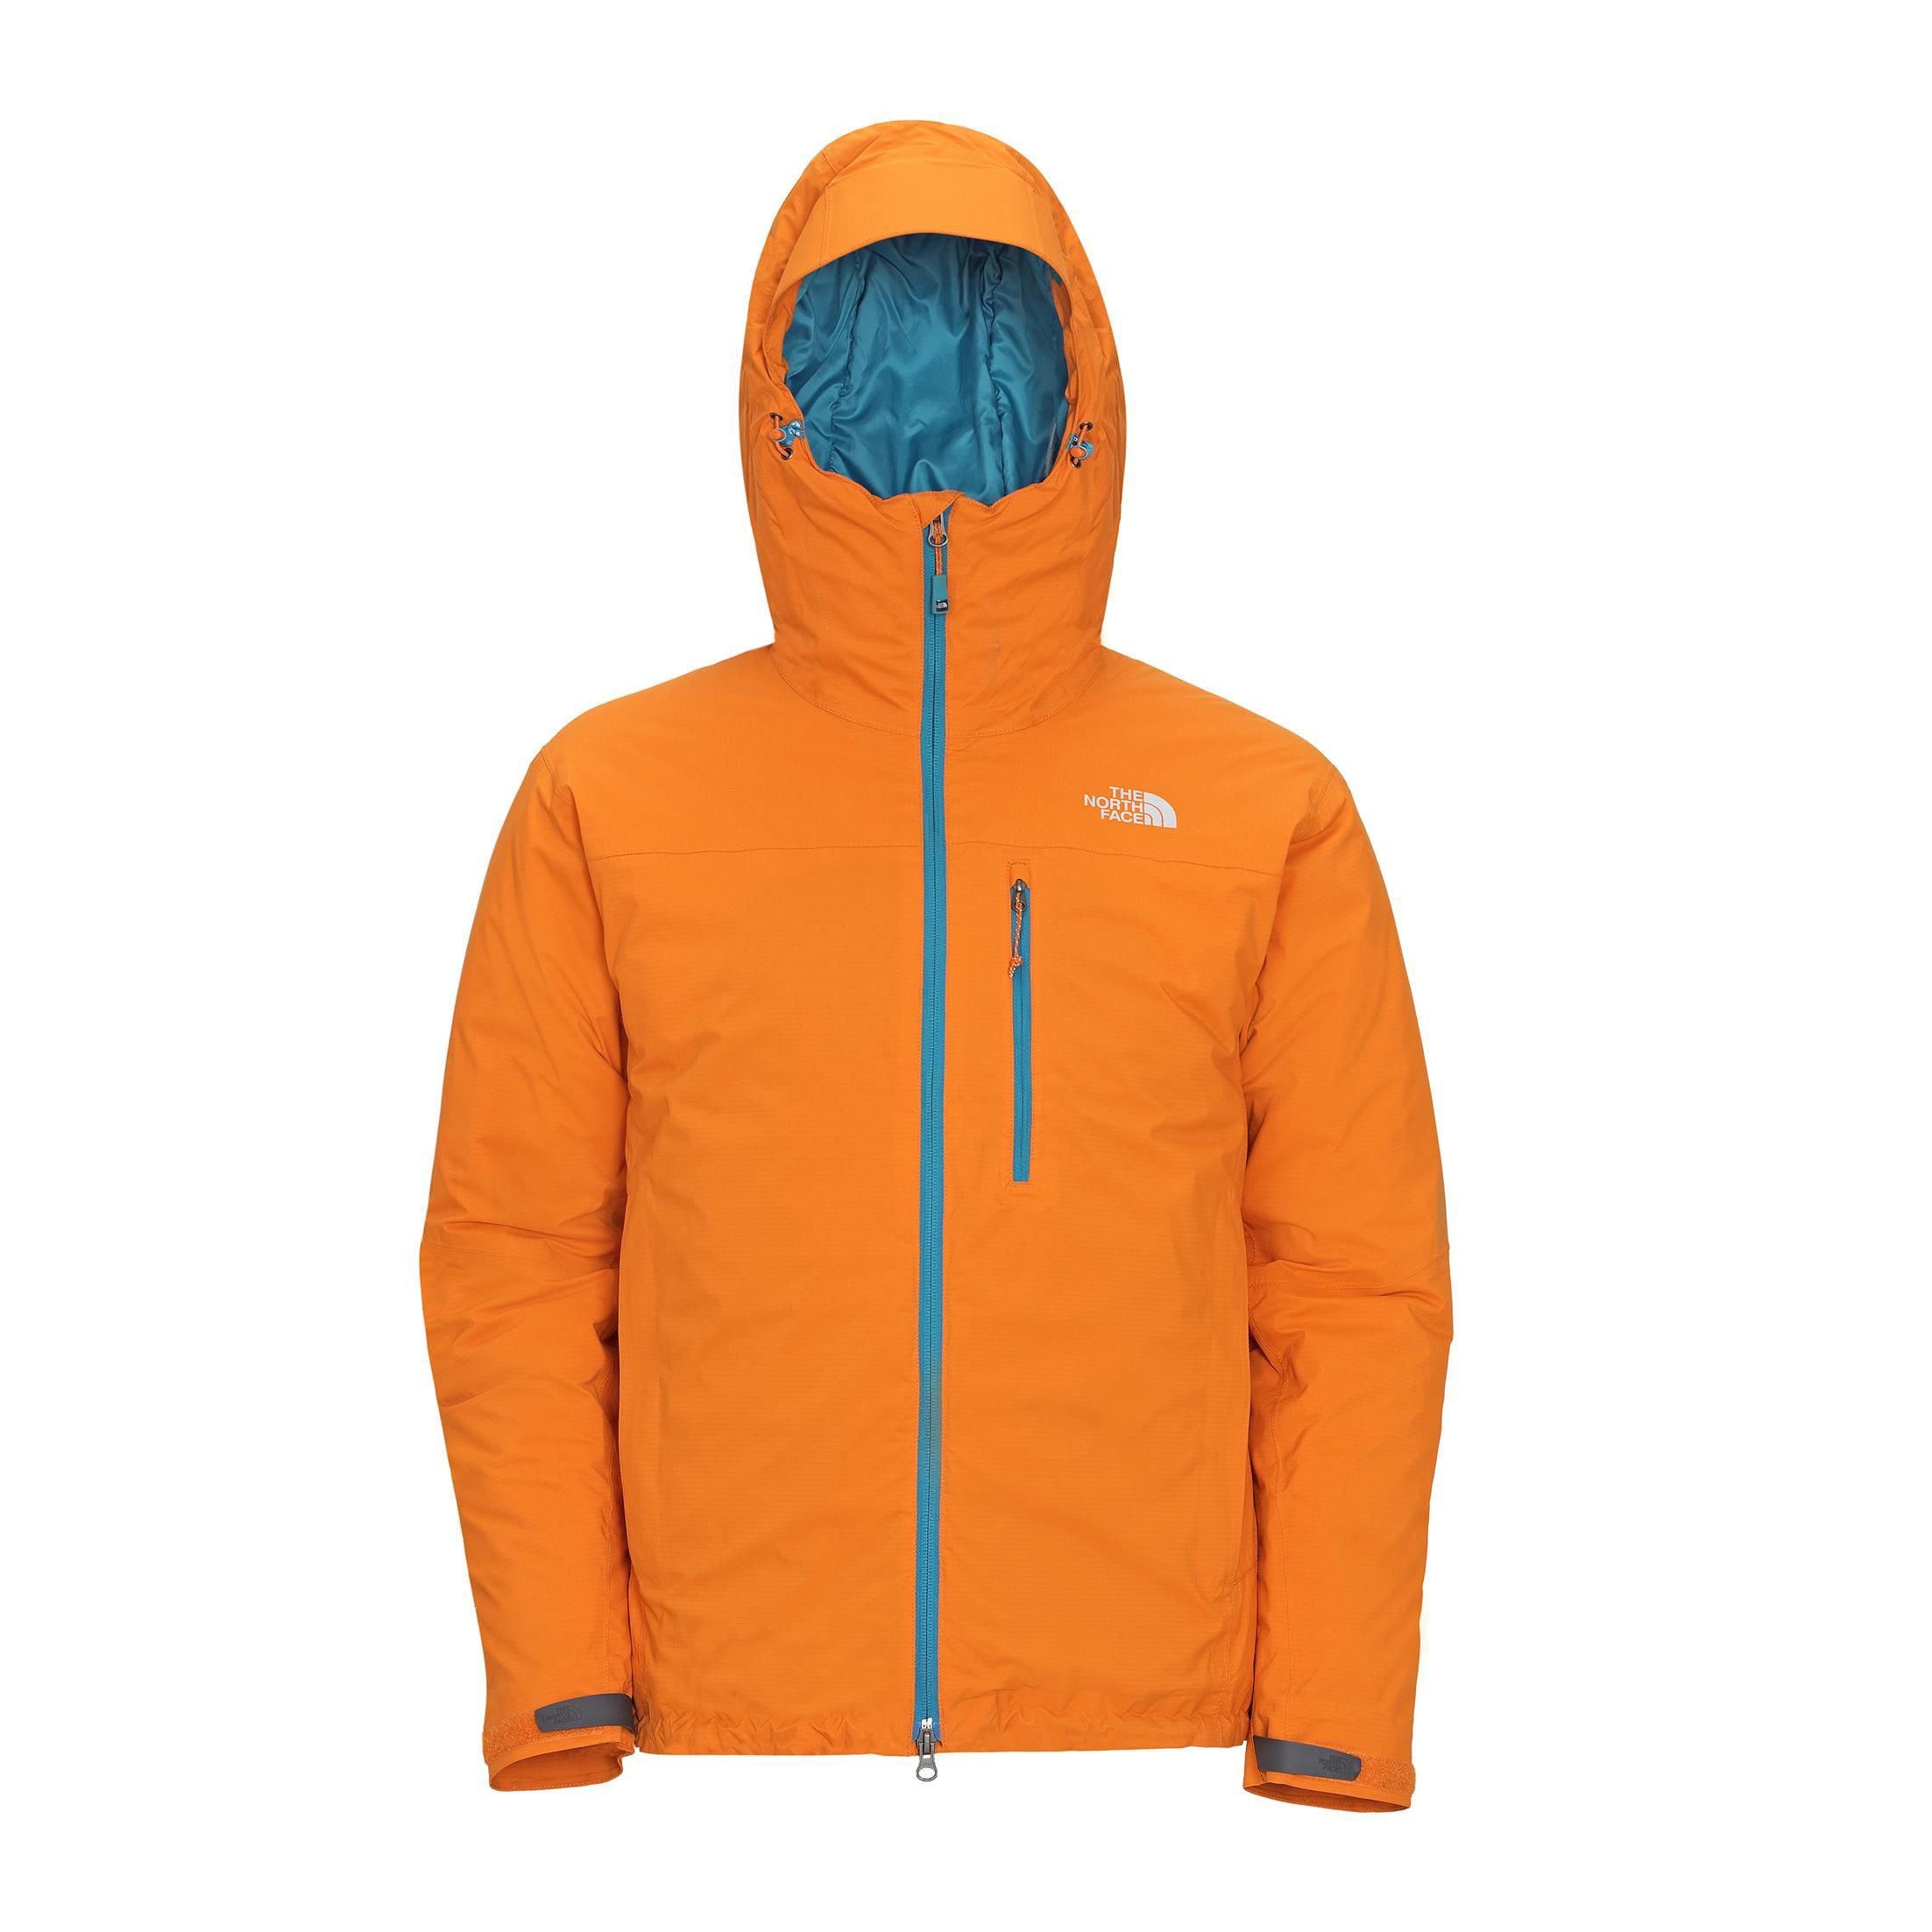 9d7715f62d7c The north face M makalu insulated jacket